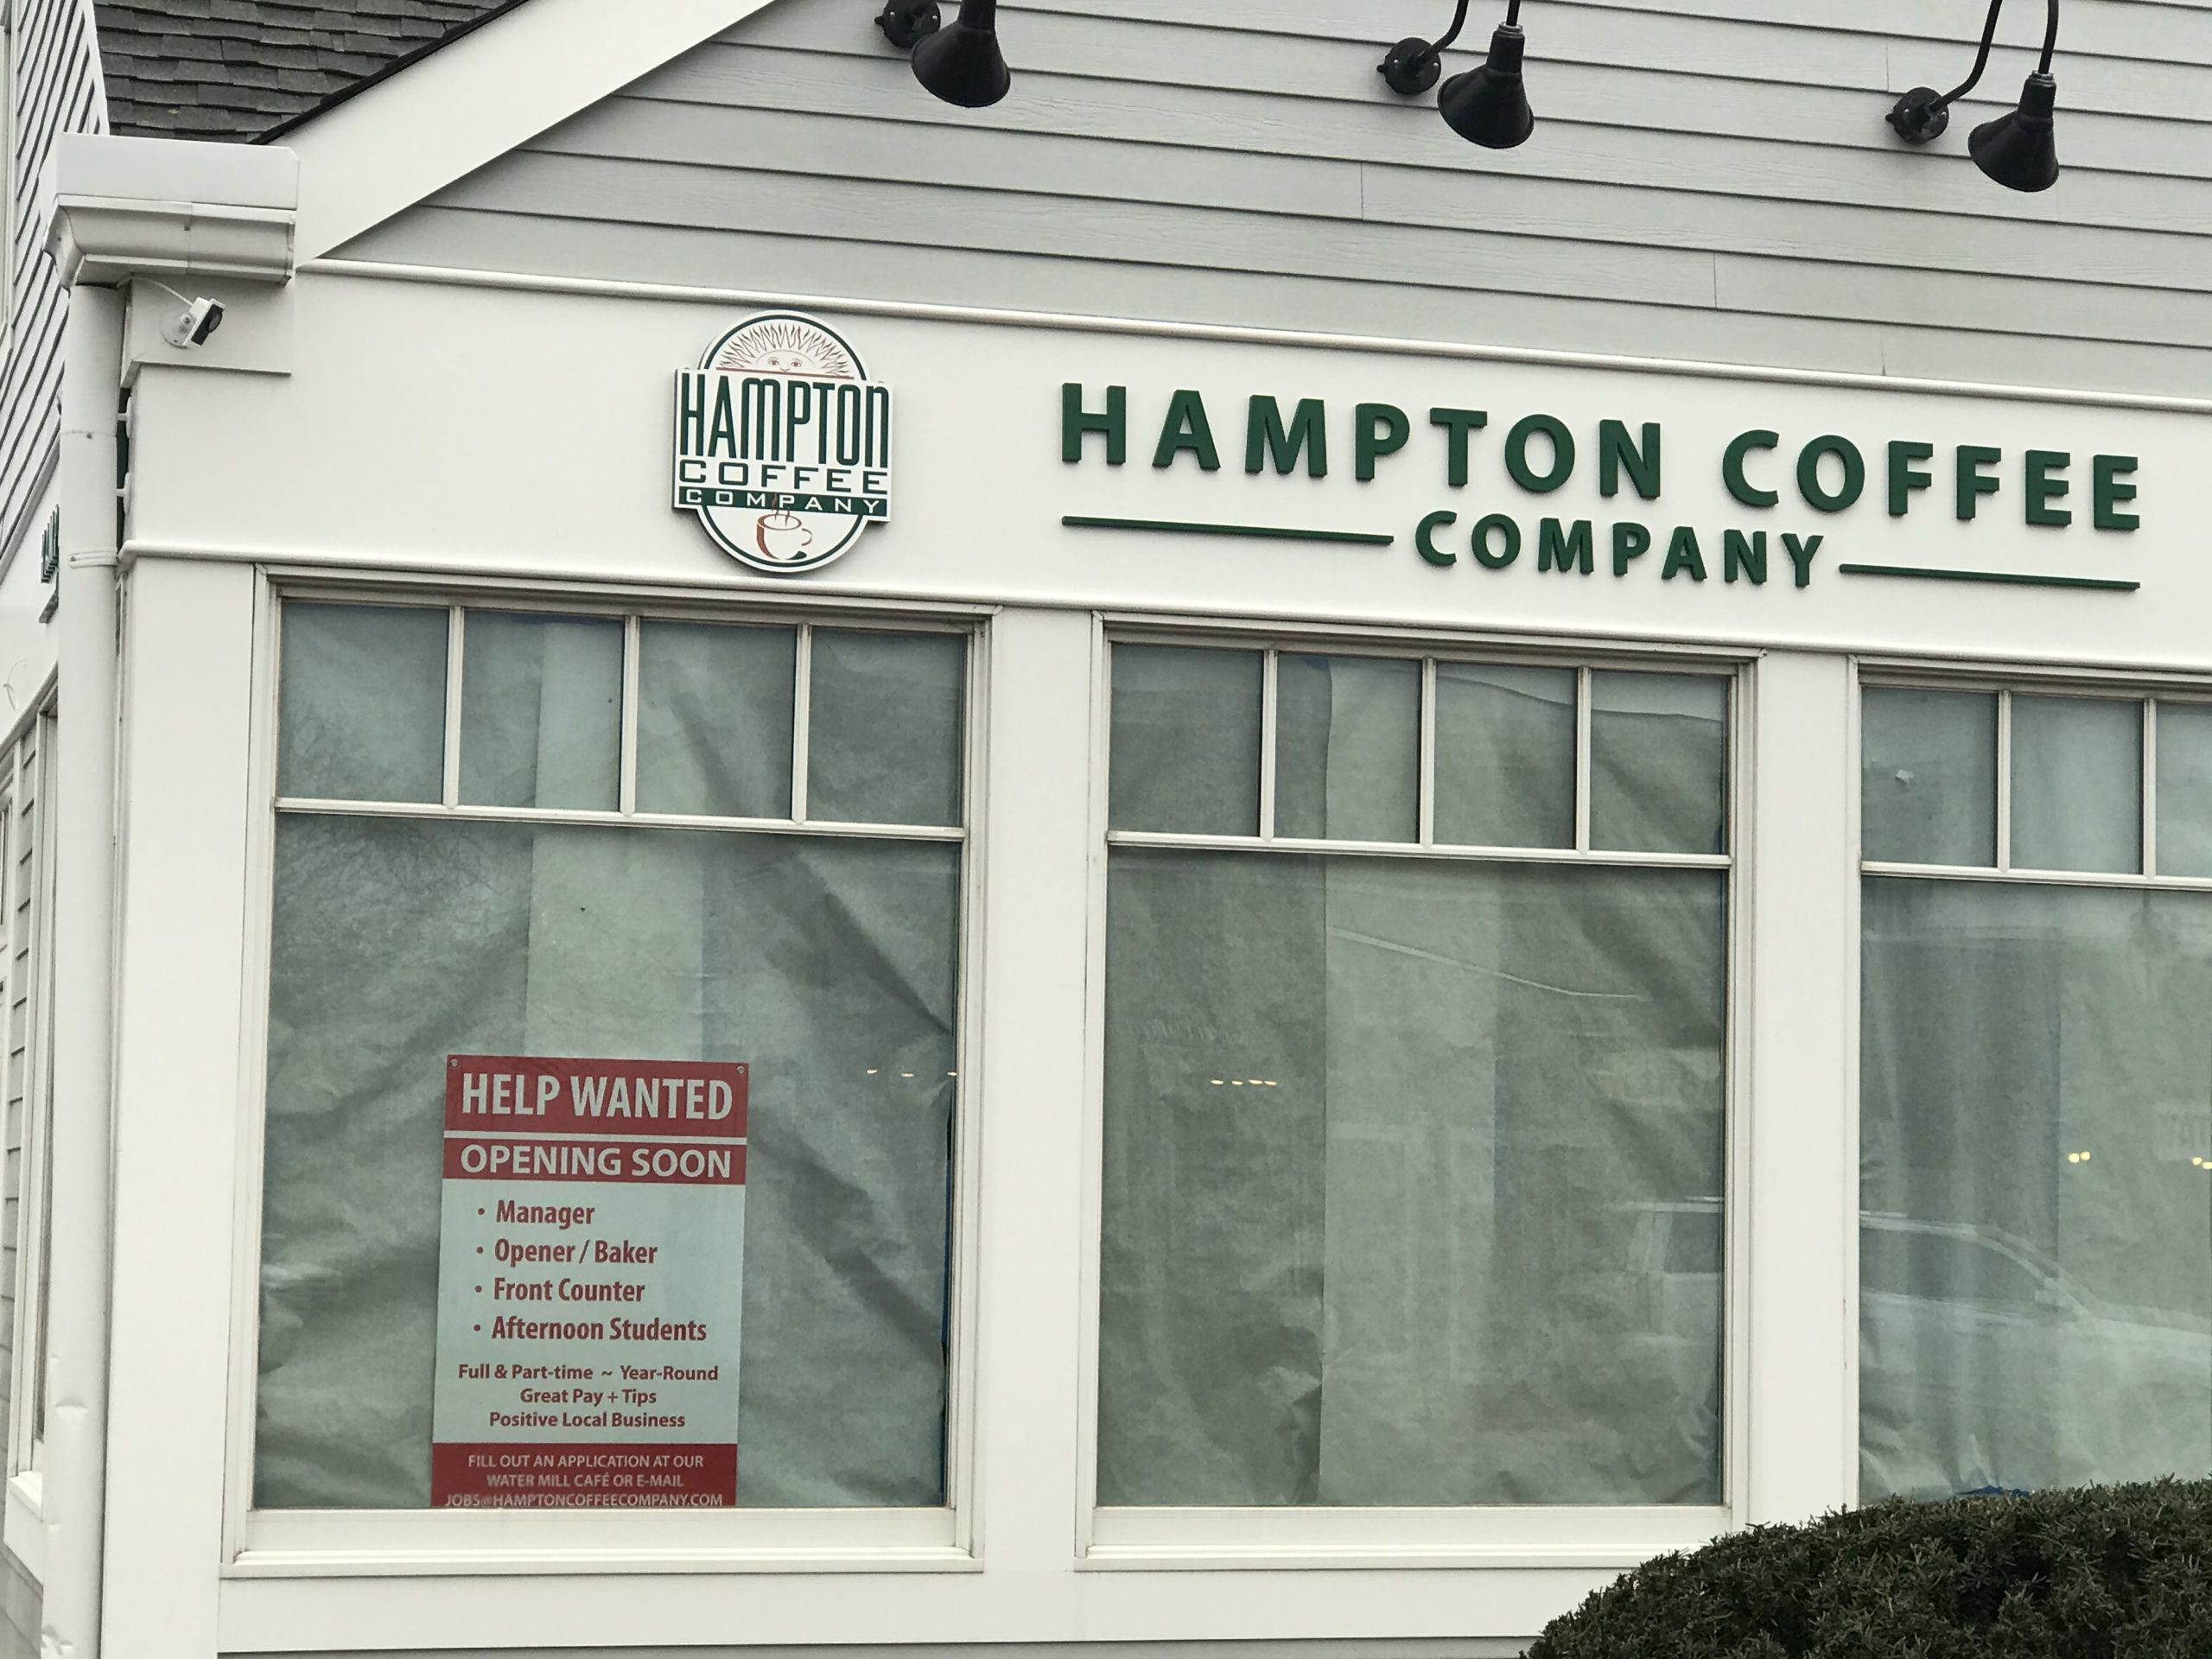 The Hampton Coffee Company is headed east with plans to open in the former Bliss Kitchen site in Montauk. VIRGINIA GARRISON